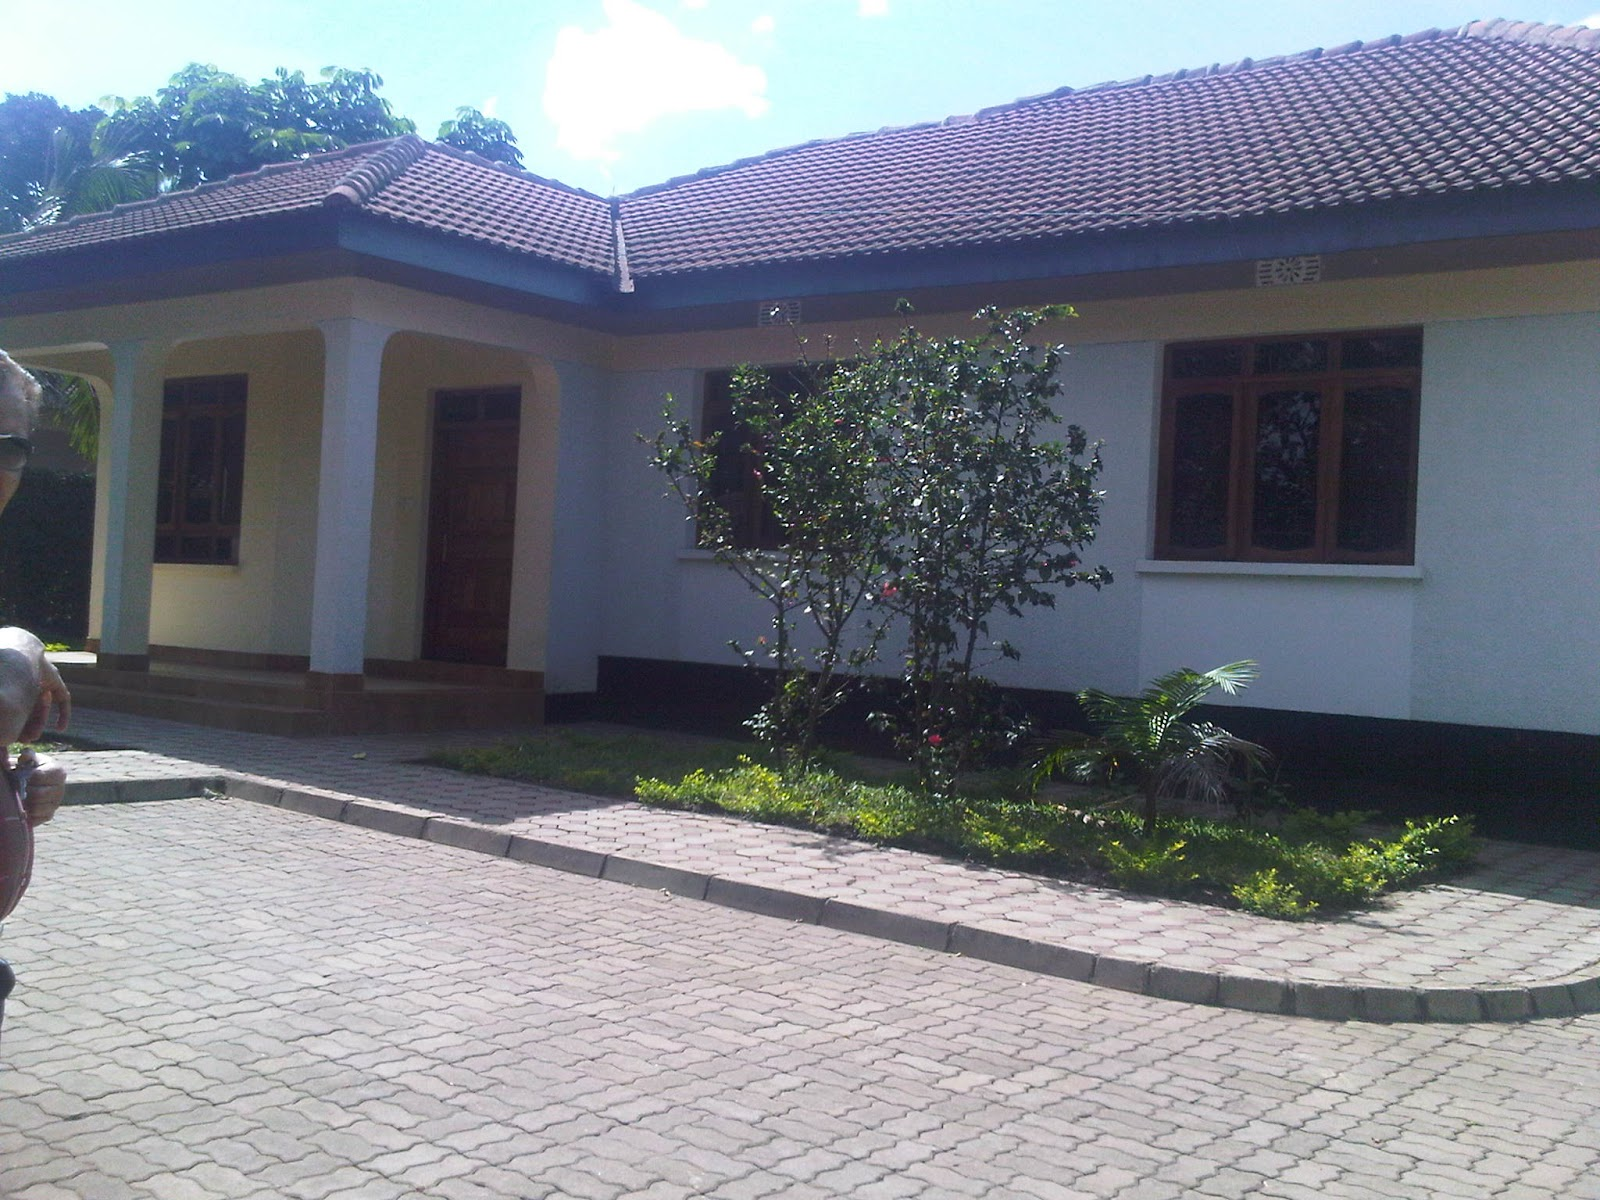 Rent house in tanzania arusha rent houses houses for sale for I bedroom house for sale